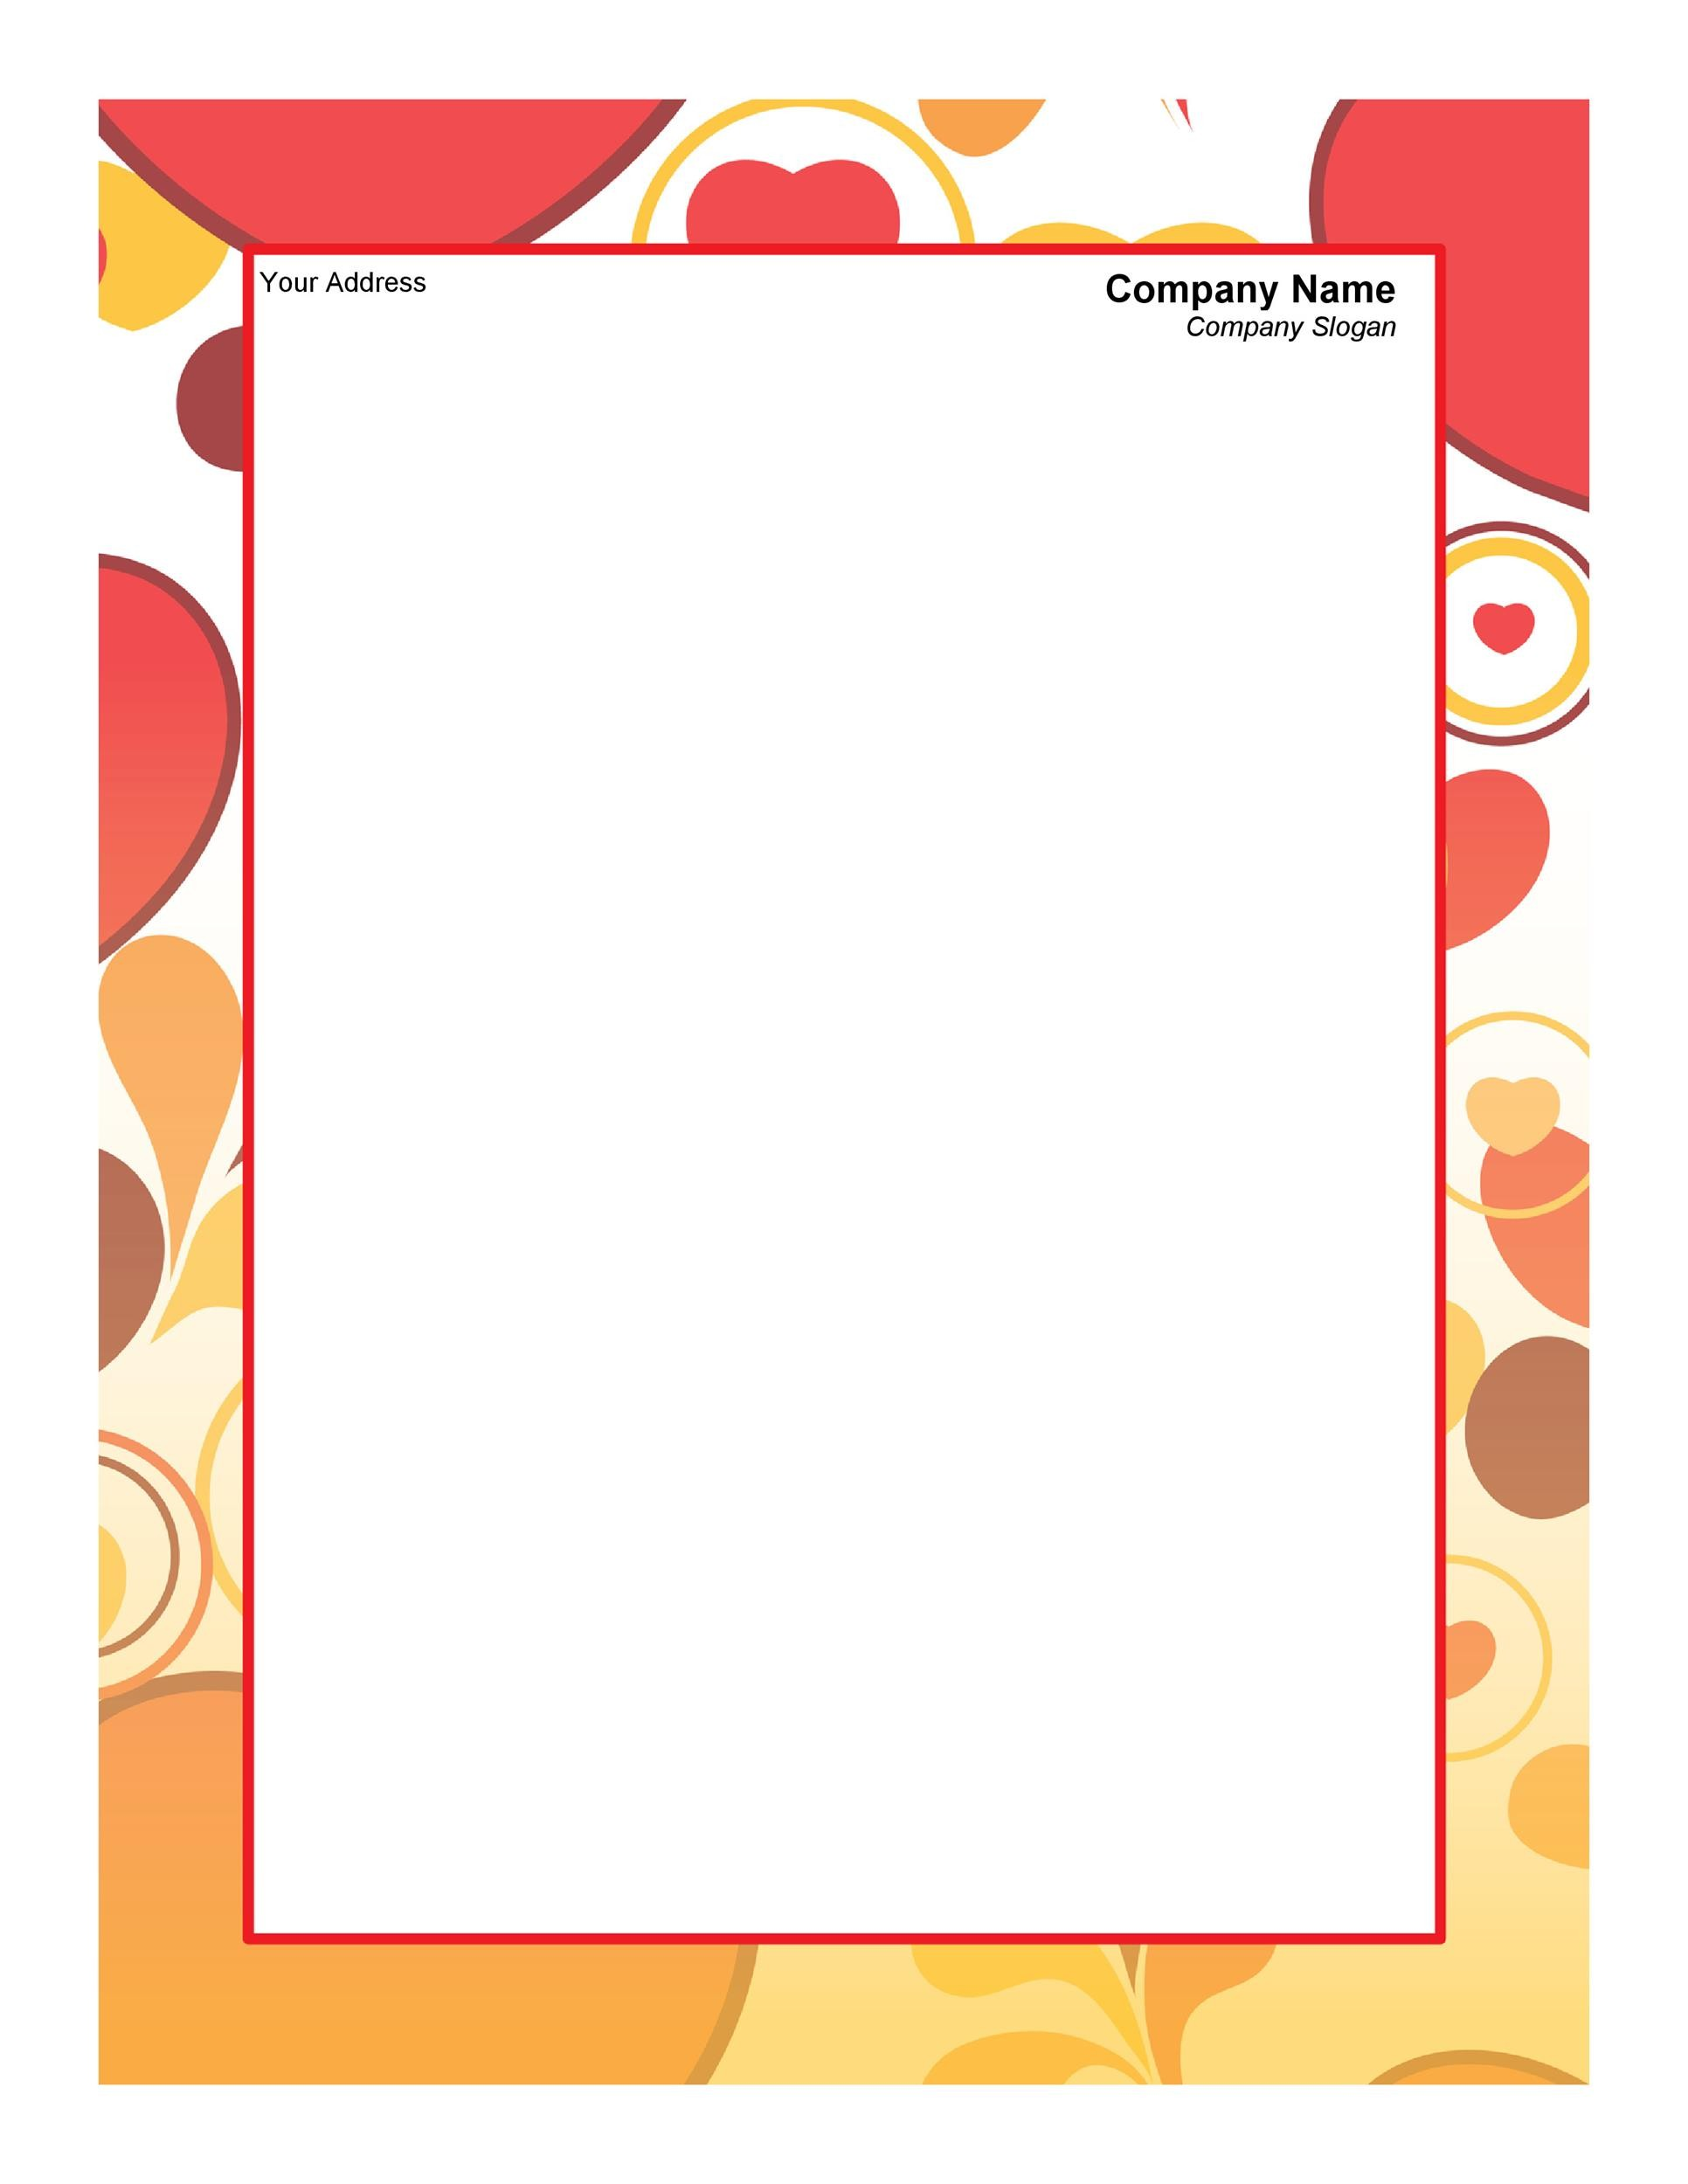 45+ Free Letterhead Templates  Examples (Company, Business, Personal)